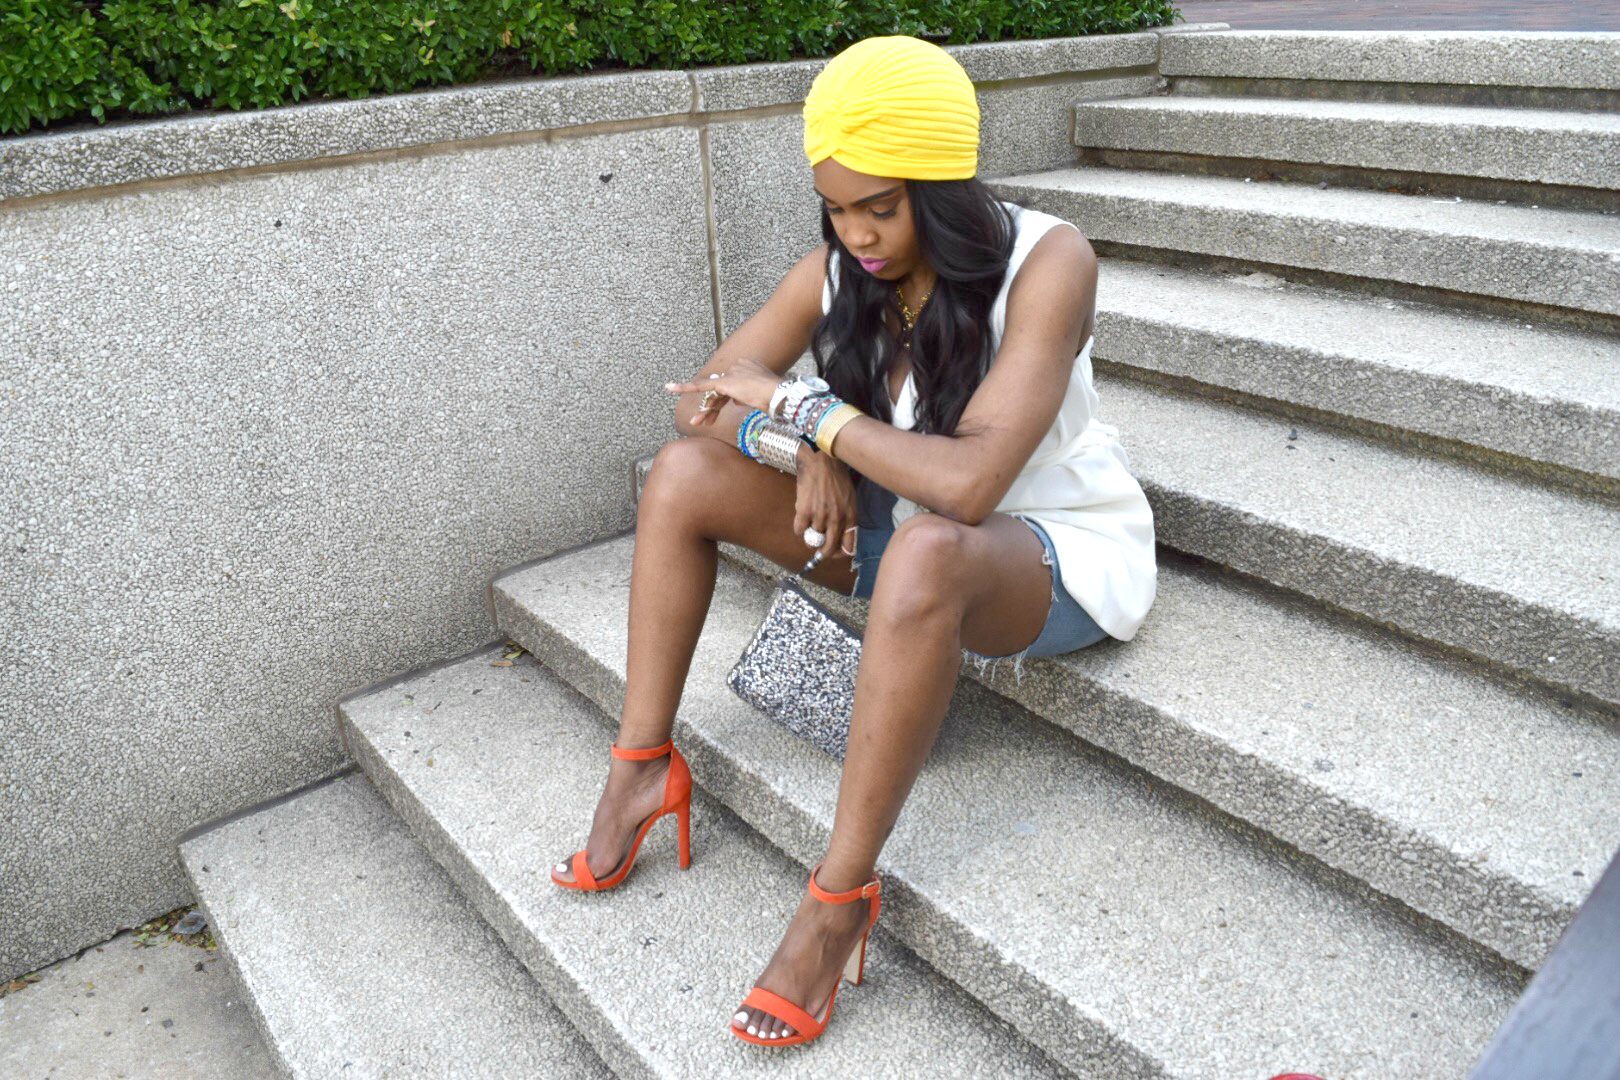 Style-Files-Forever 21-White-Longline Belted-Vest-Mossimo-Denim-Distressed--shorts-Justfab-Orange-heel-kati-sandals-yellow-turban-mirror-sunglasses-oohlalablog-5